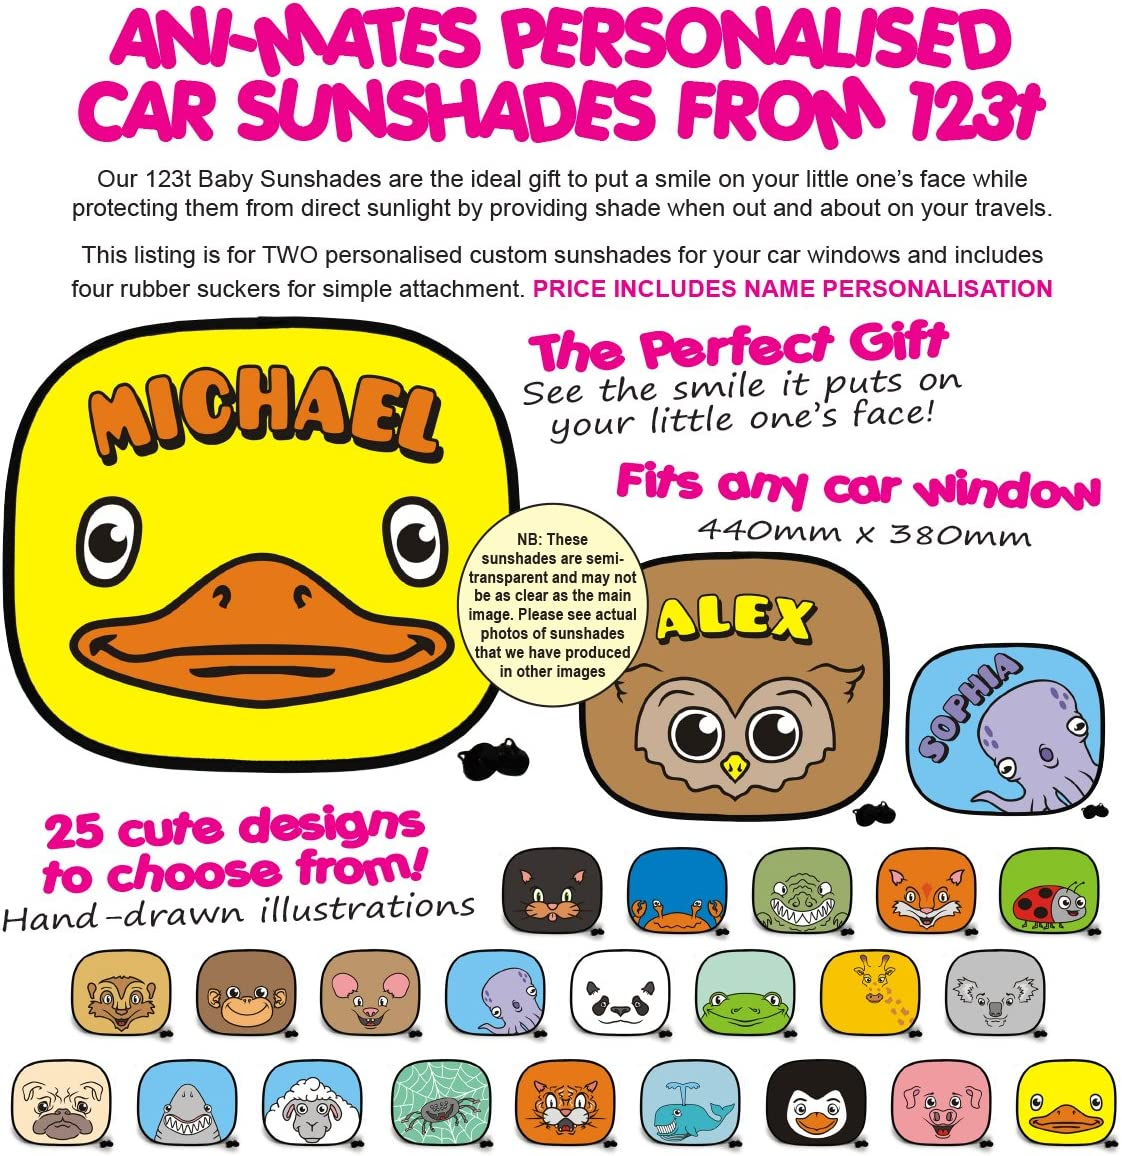 Sheep Plain Baby//Child Vehicle Car Sunshade x 2 Birthday Funny Gift for him for her